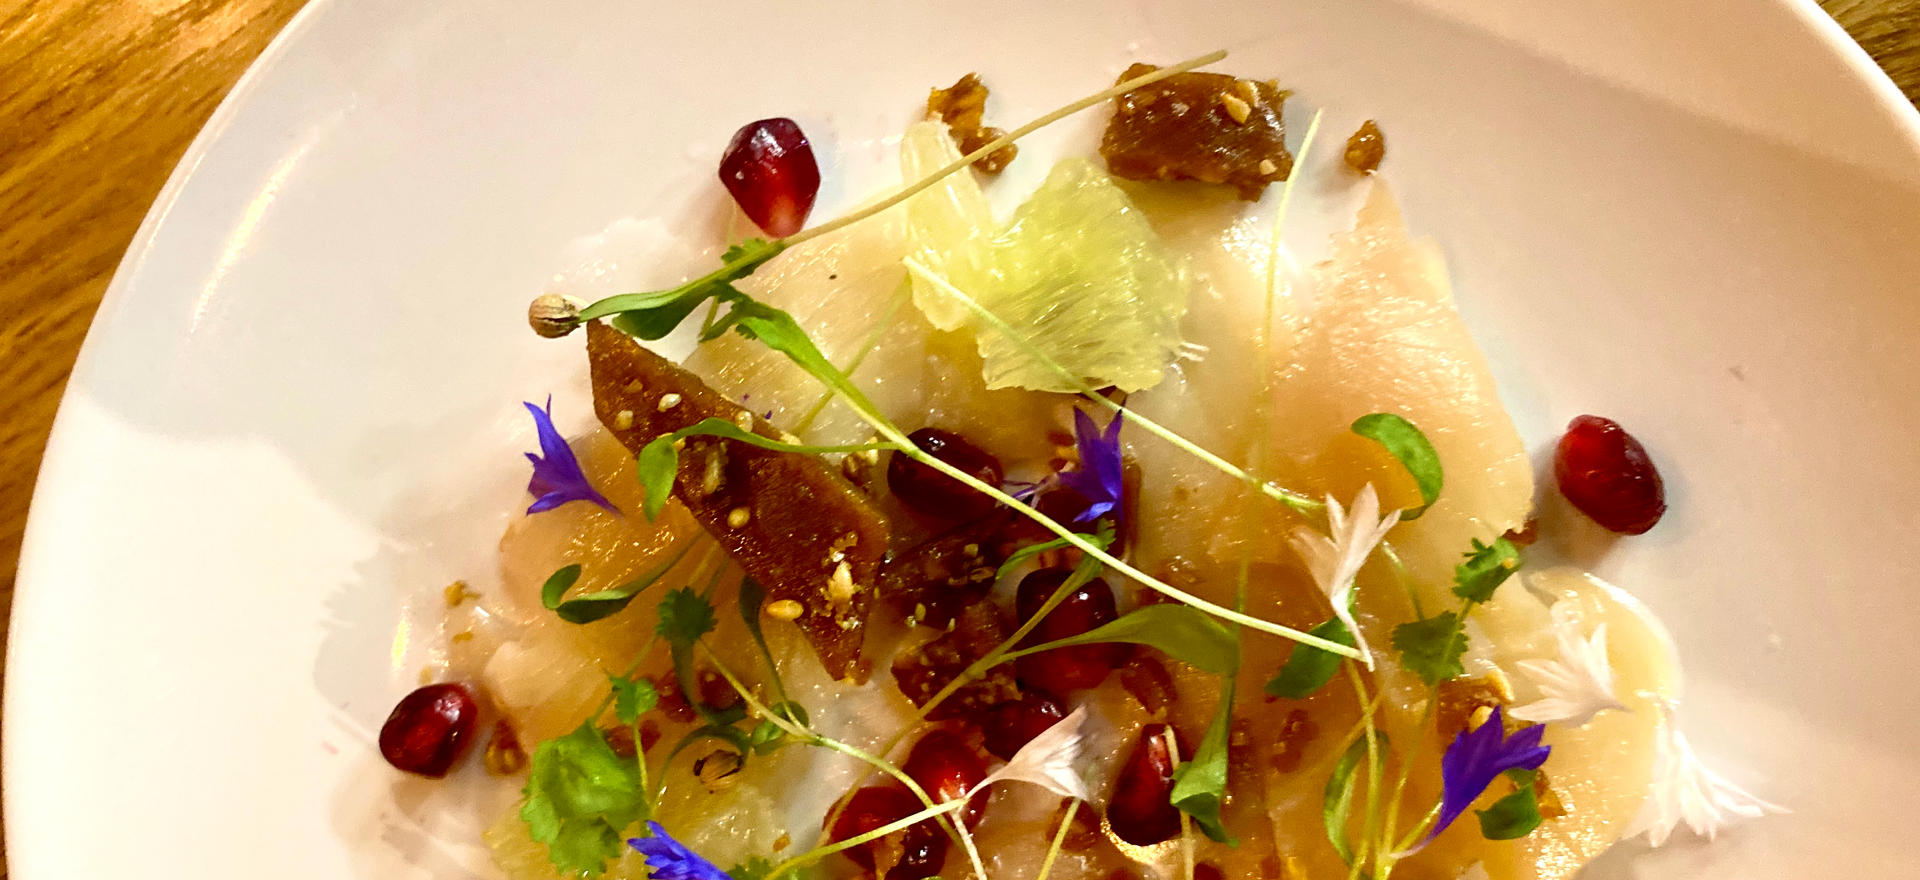 Hamachi Crudo with Pomegrantes, Lime, and Sesame Seed Brittle